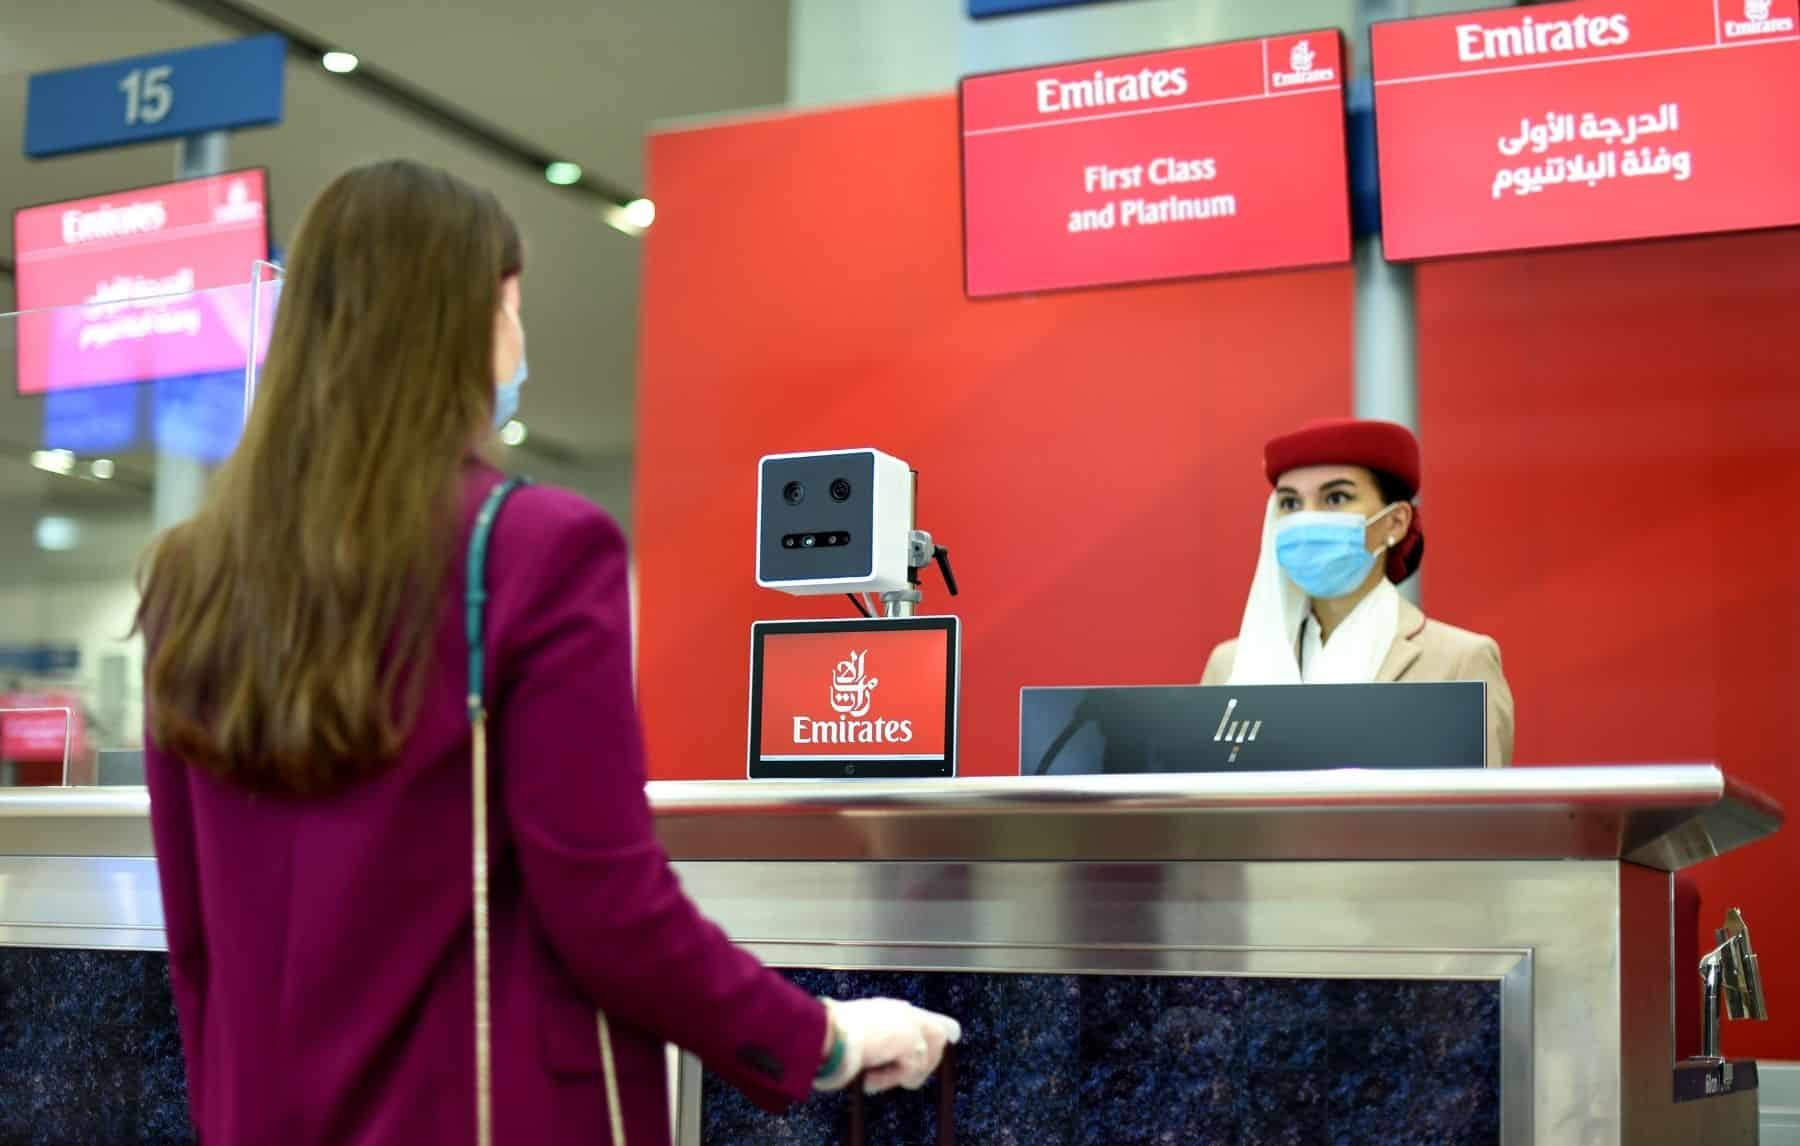 Emirates has launched an integrated biometric path at Dubai International airport as a part of its commitment to innovation and an unmatched customer experience. The contactless airport experience provides convenience and reduces human interaction, putting emphasis on health and safety.